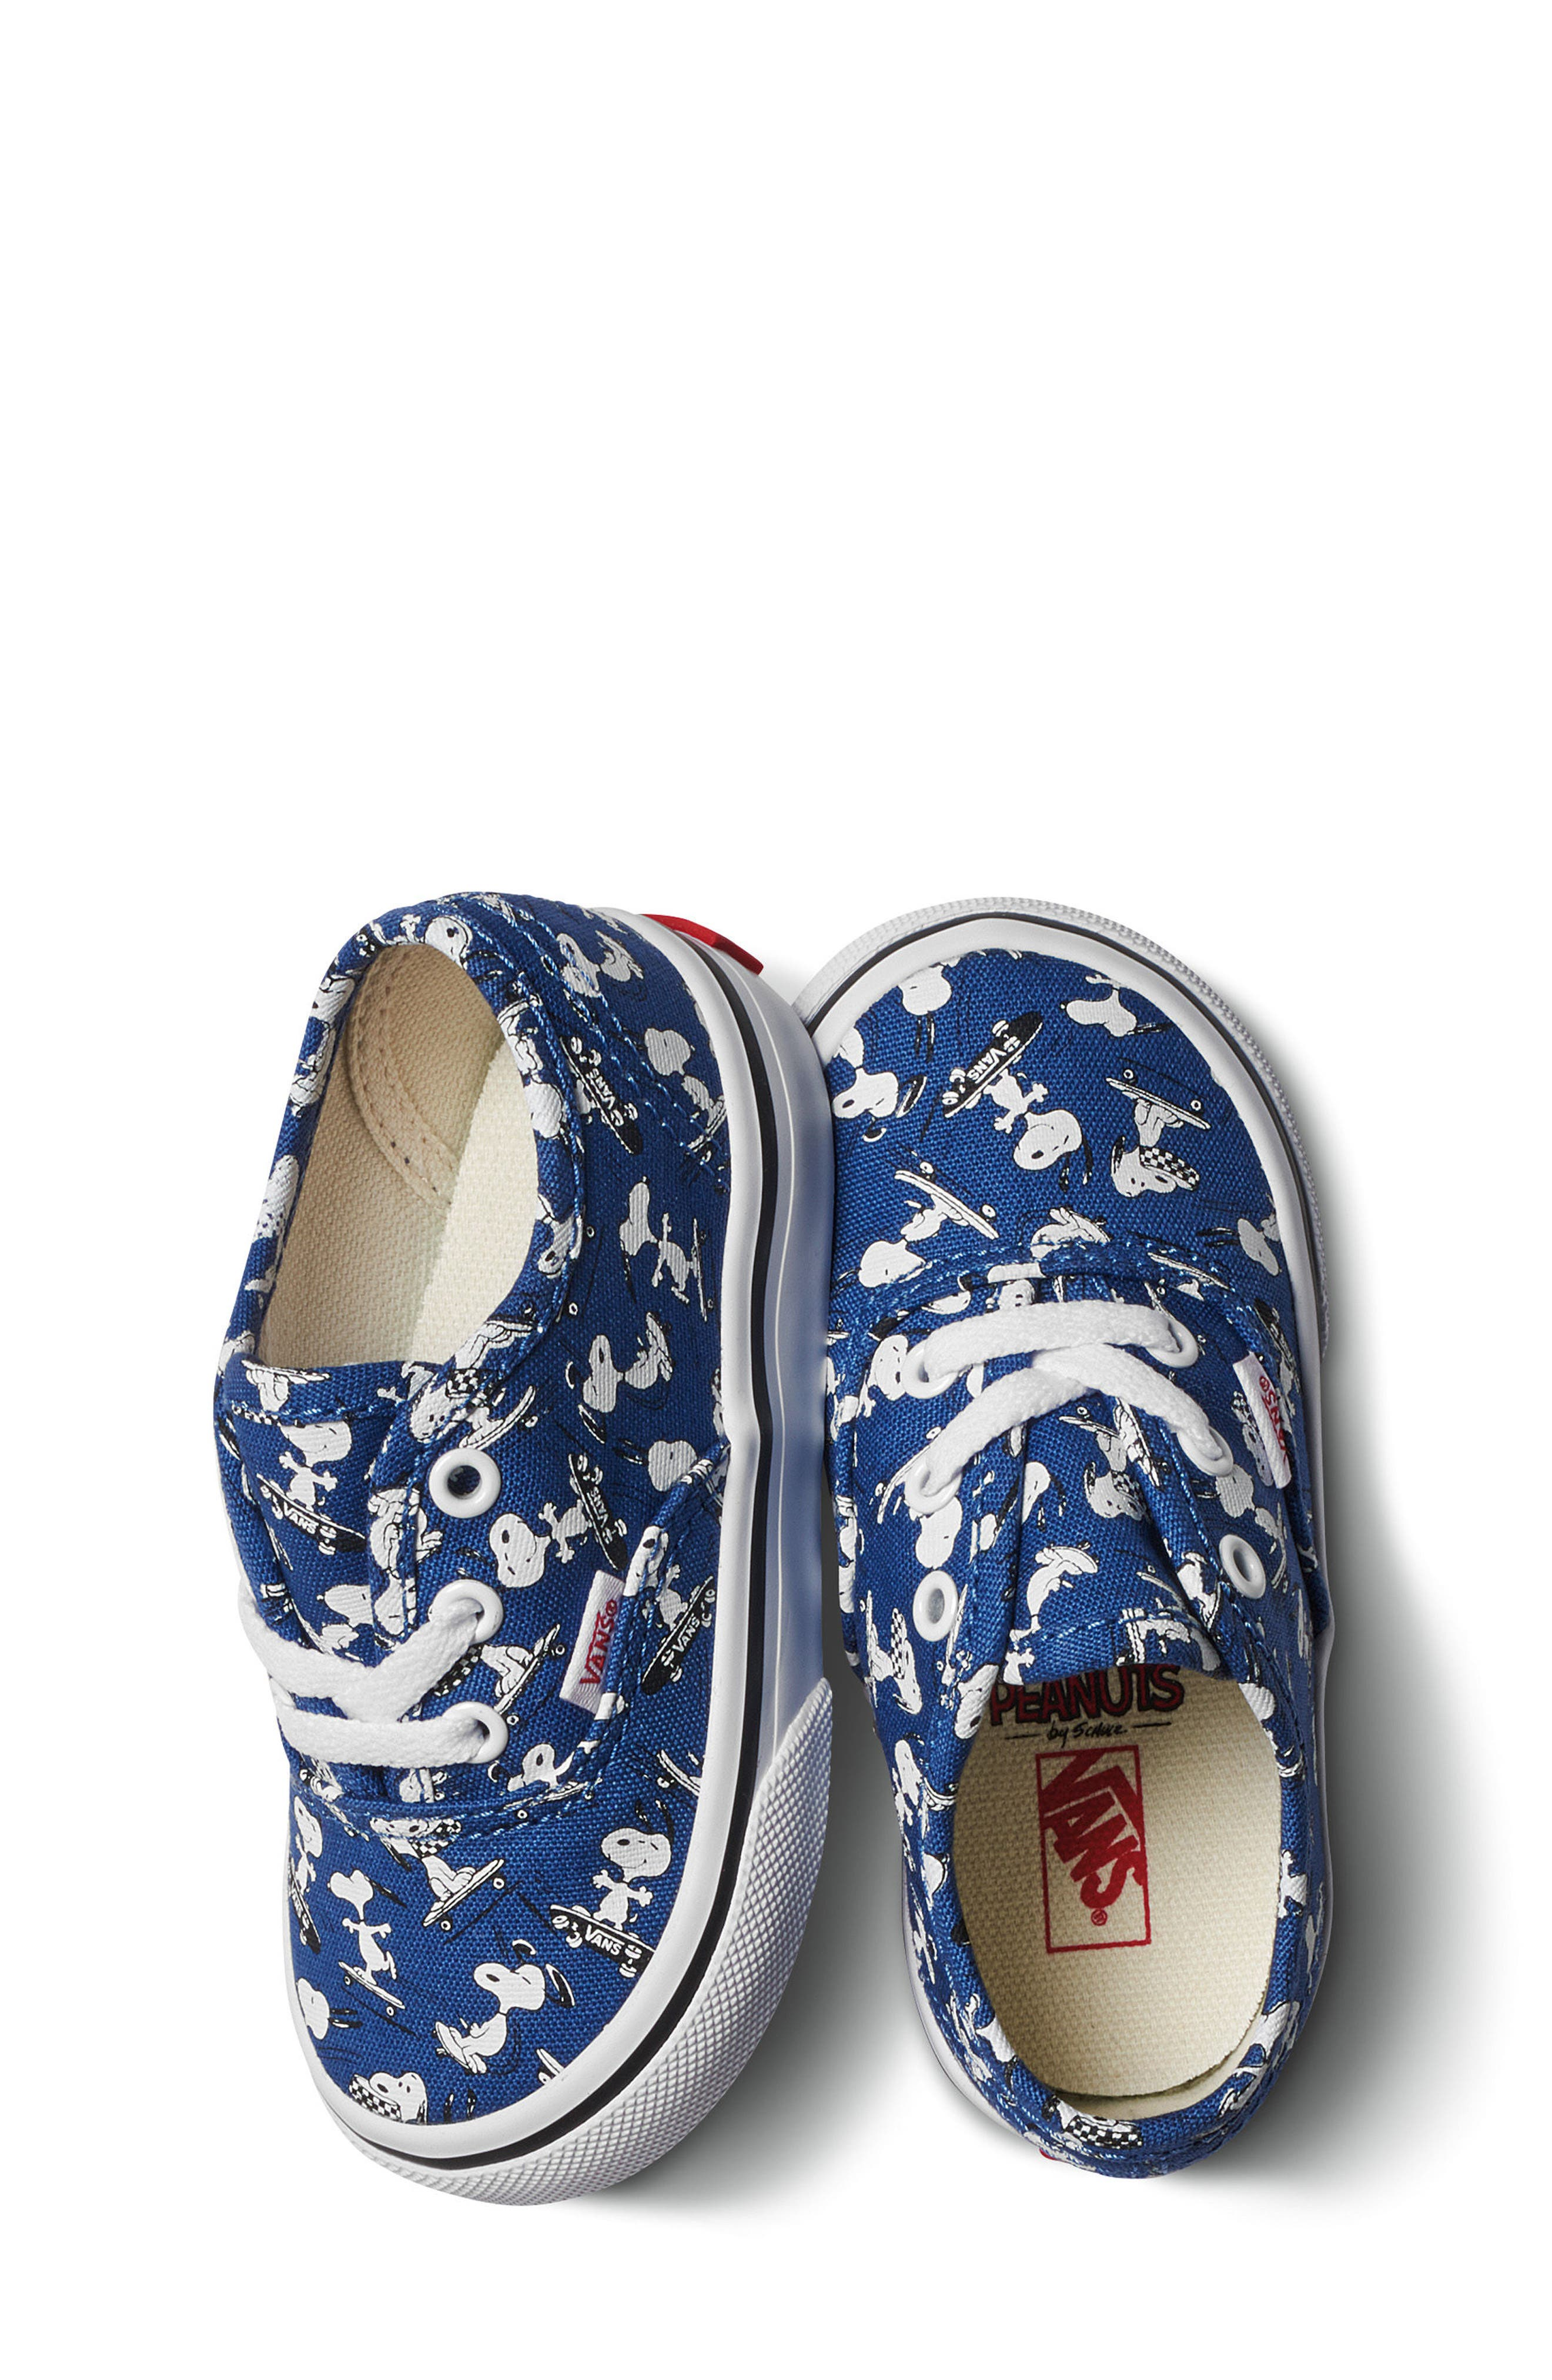 x Peanuts Authentic Sneaker,                             Alternate thumbnail 7, color,                             400